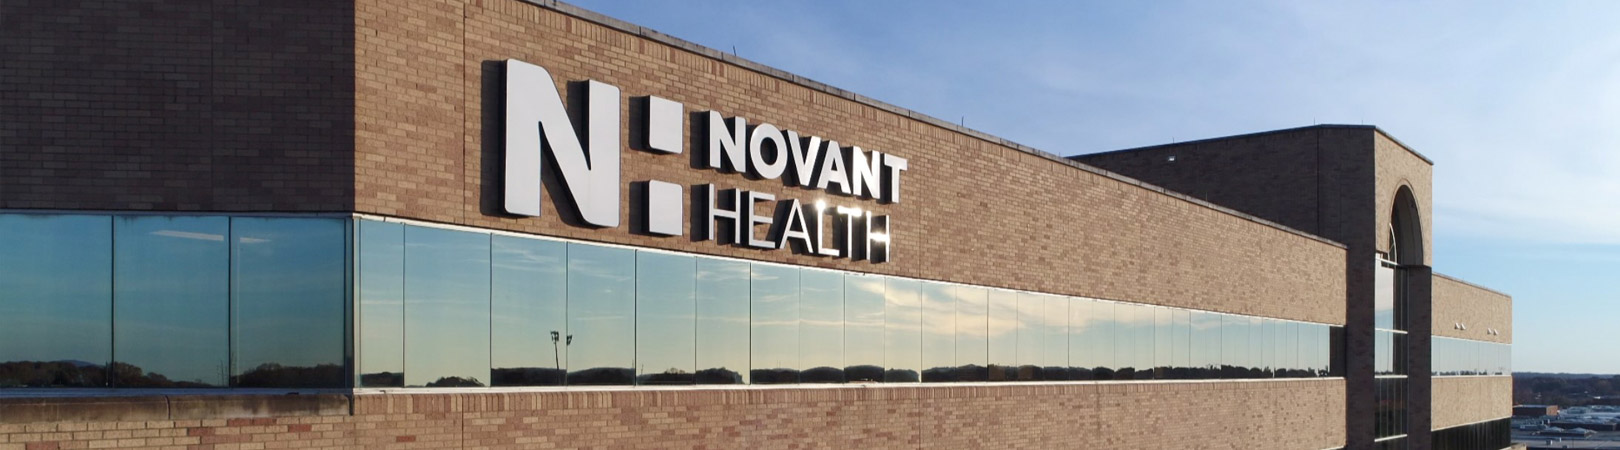 Novant Health Leverages Wolters Kluwer's Lippincott Solutions to establish nursing care standards and exceed quality benchmarks